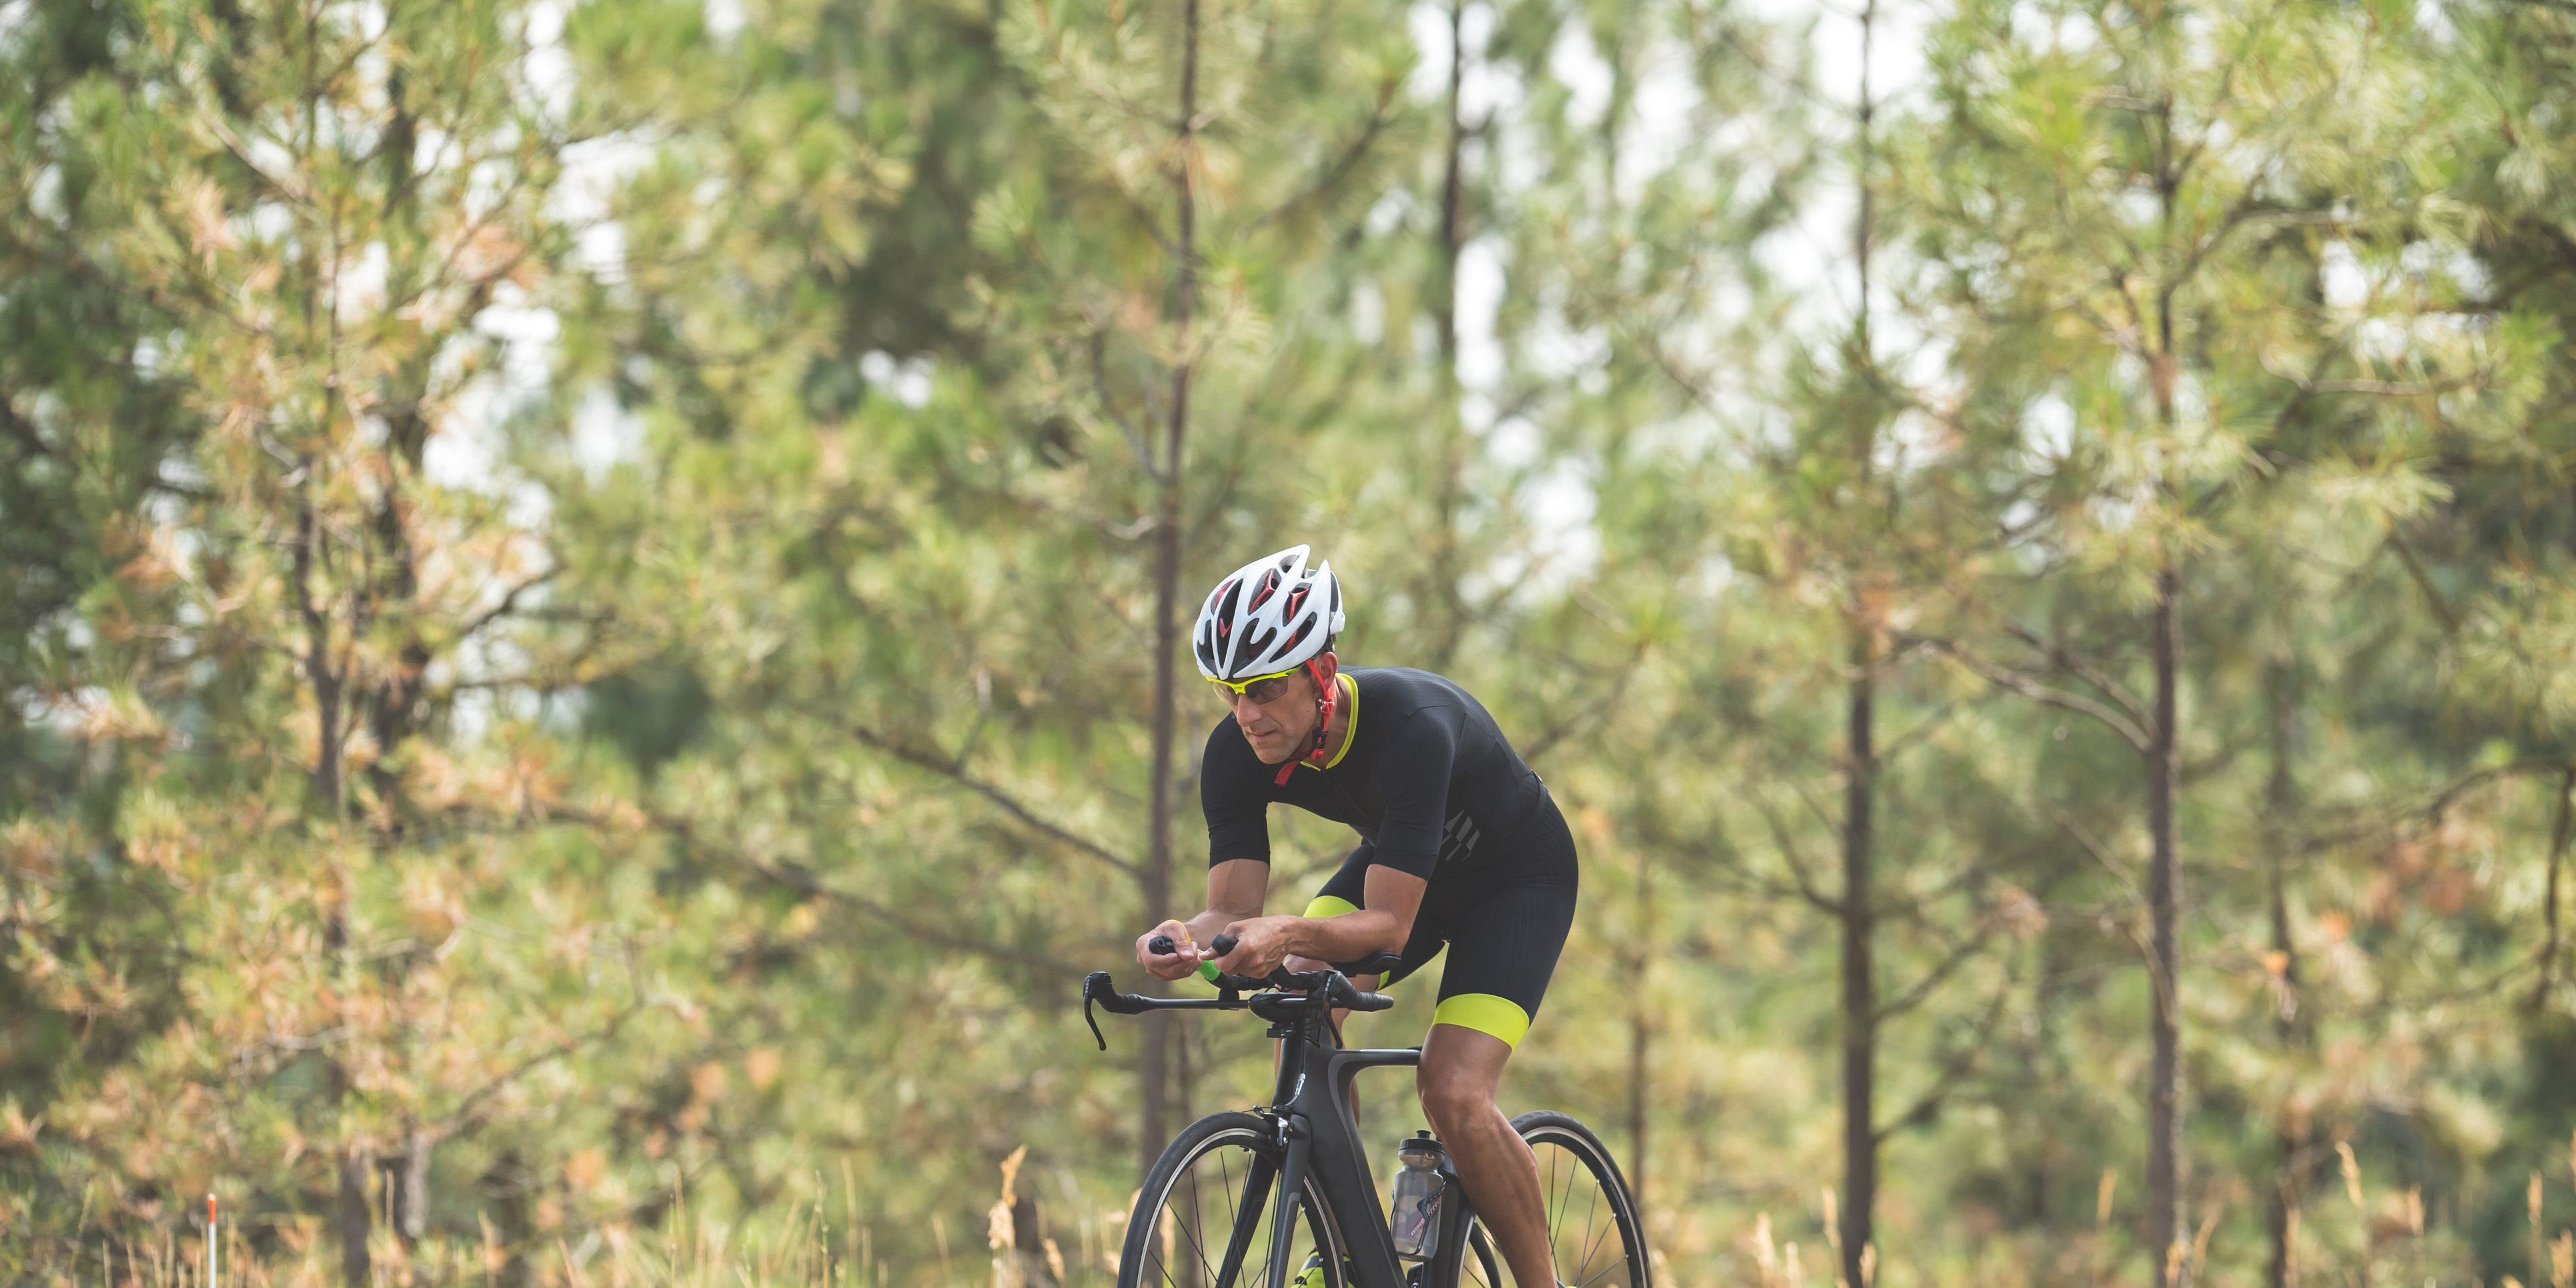 Triathlete Doing Cycling Stage